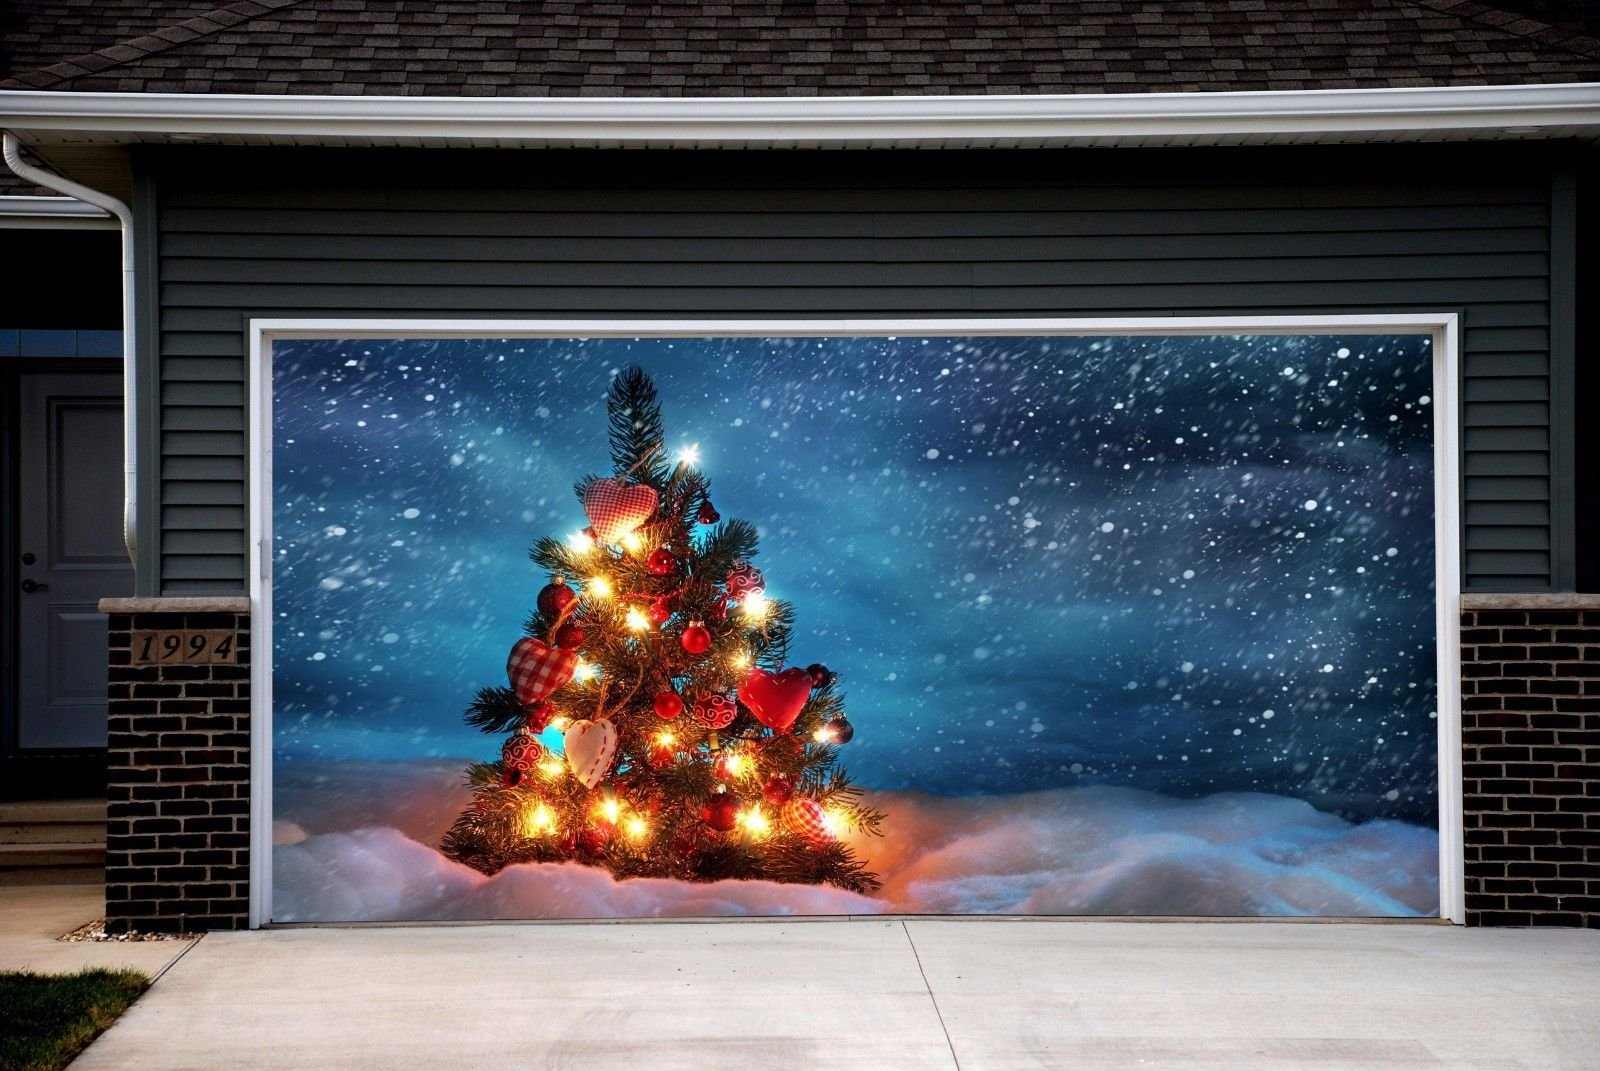 Garage Door Covers Banners Outdoor Full Color House Christmas Tree Billboard Murals for 2 Car Garage Door Holiday Christmas Decor 3D Effect size 82x188 inches DAV21